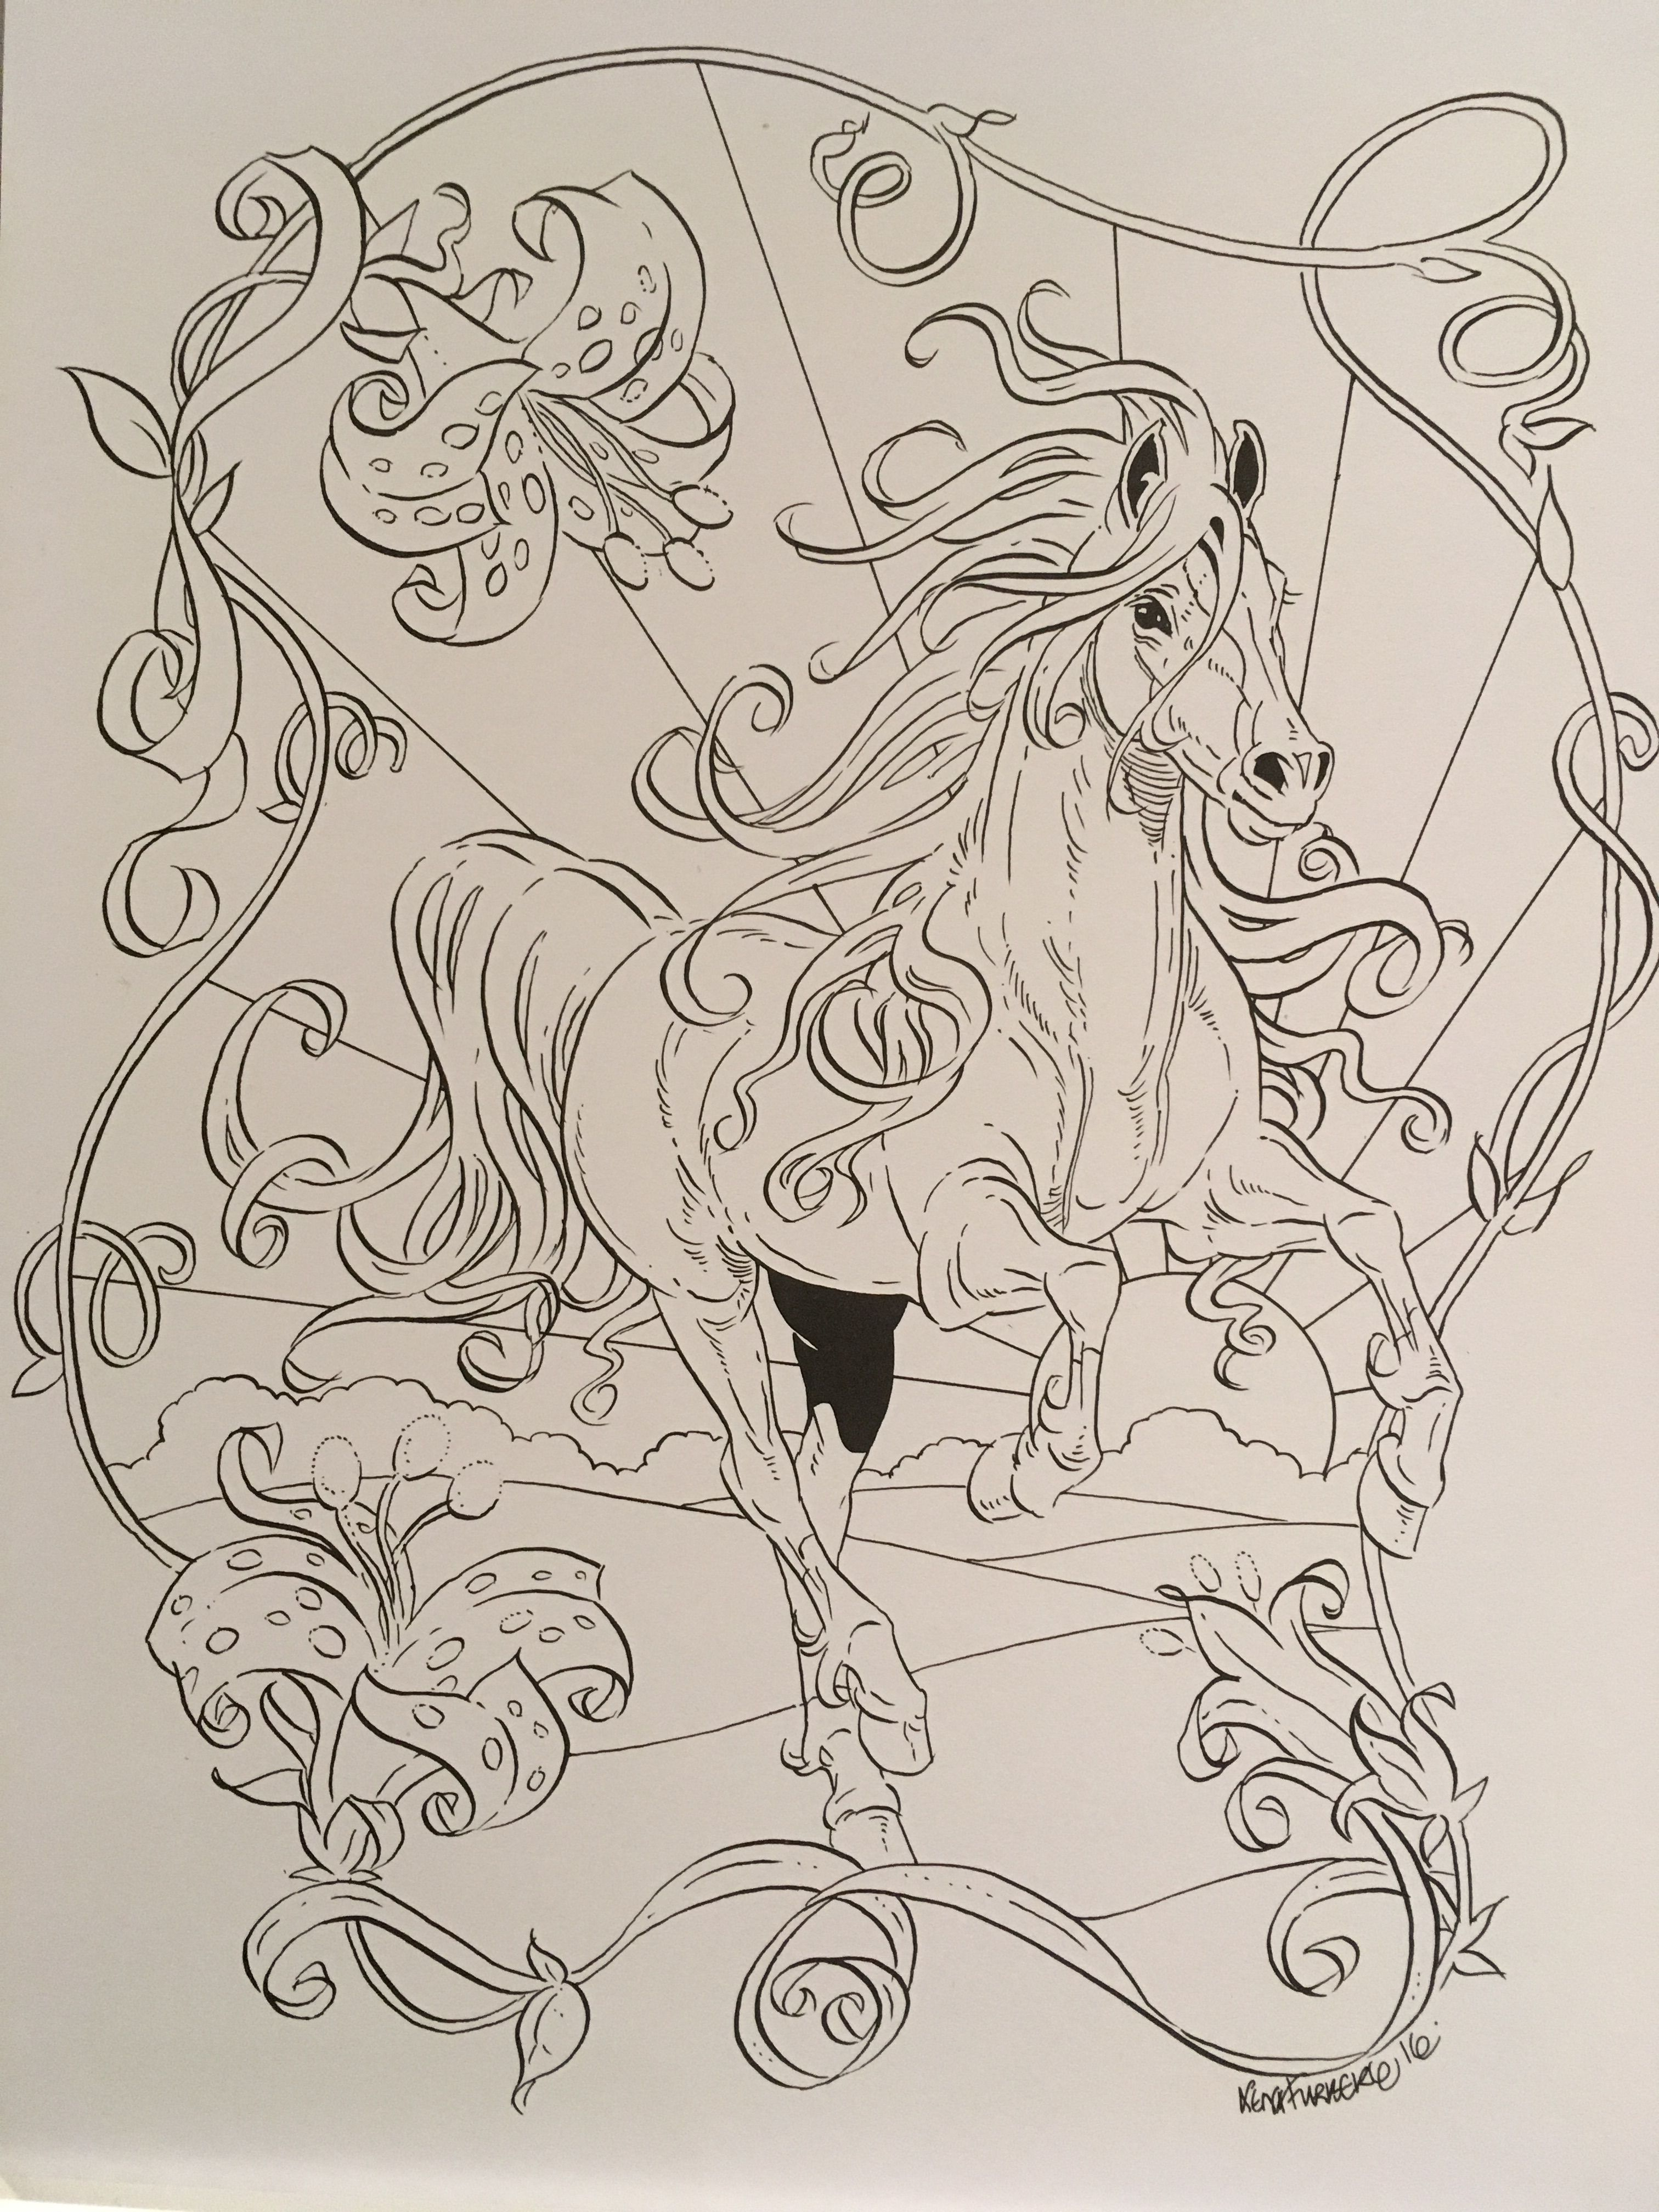 From lena furbergus colouring book as close as it gets to what i